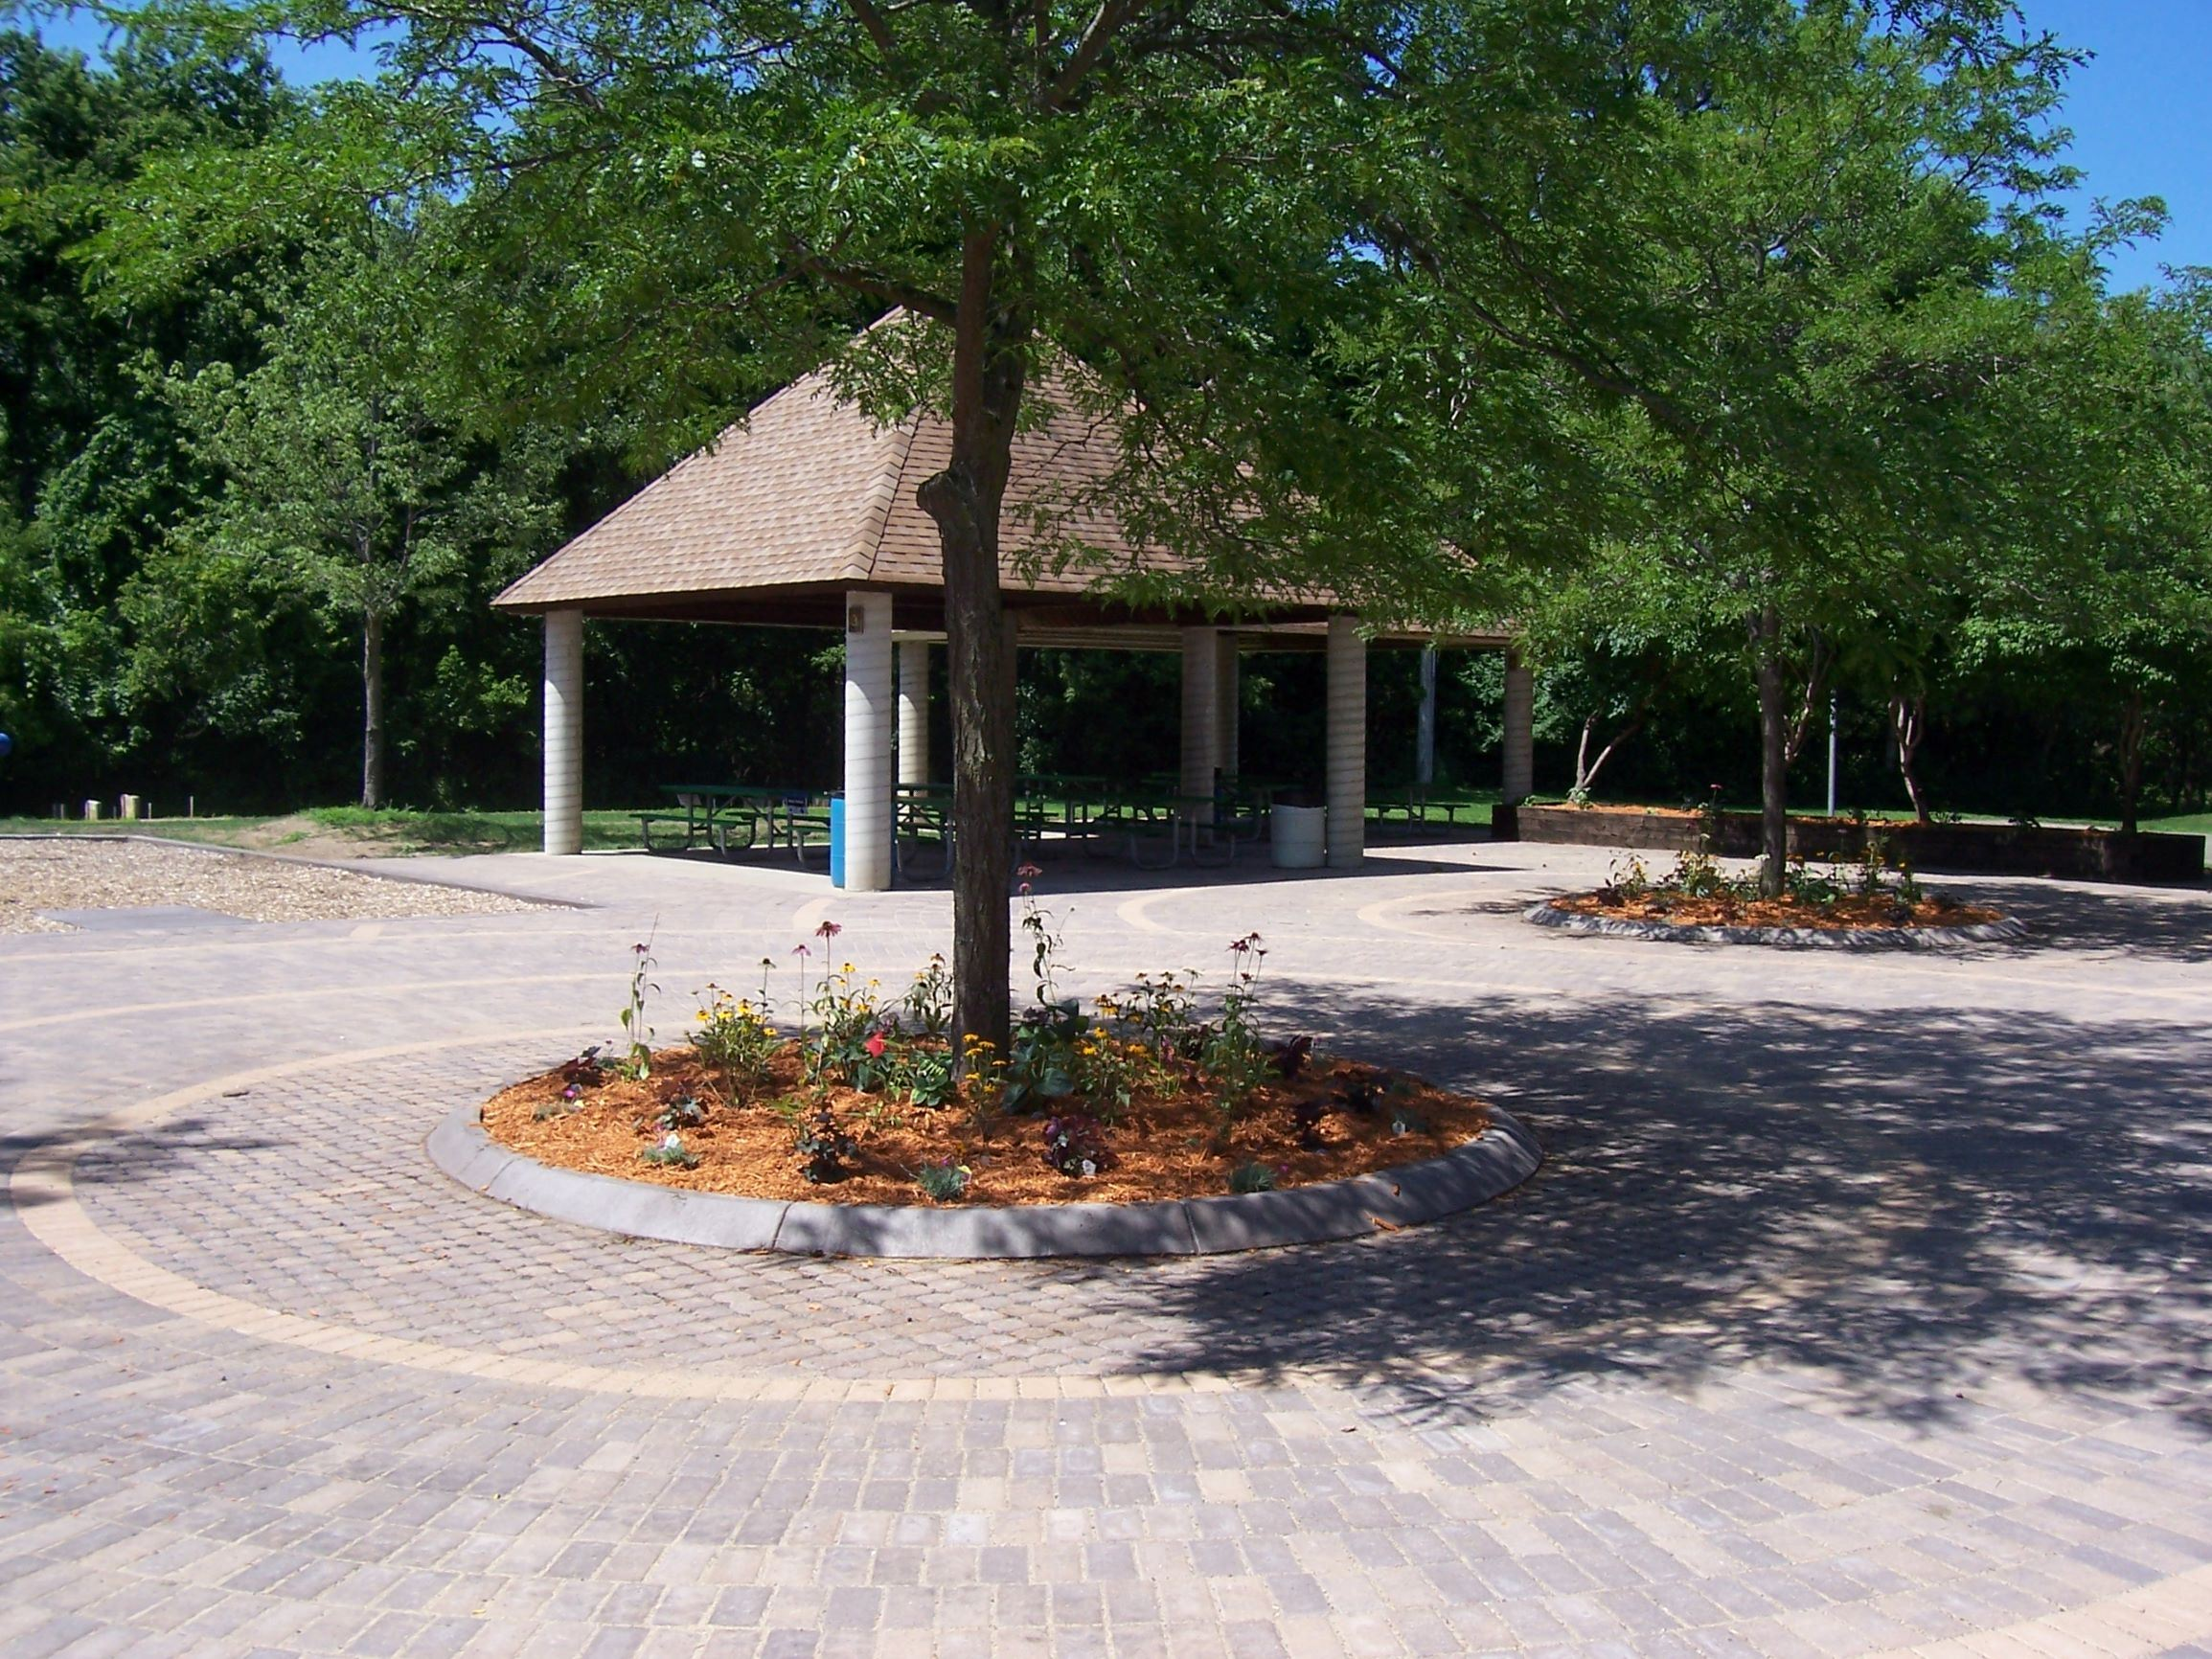 Mississippi River Community Park shelters and plaza